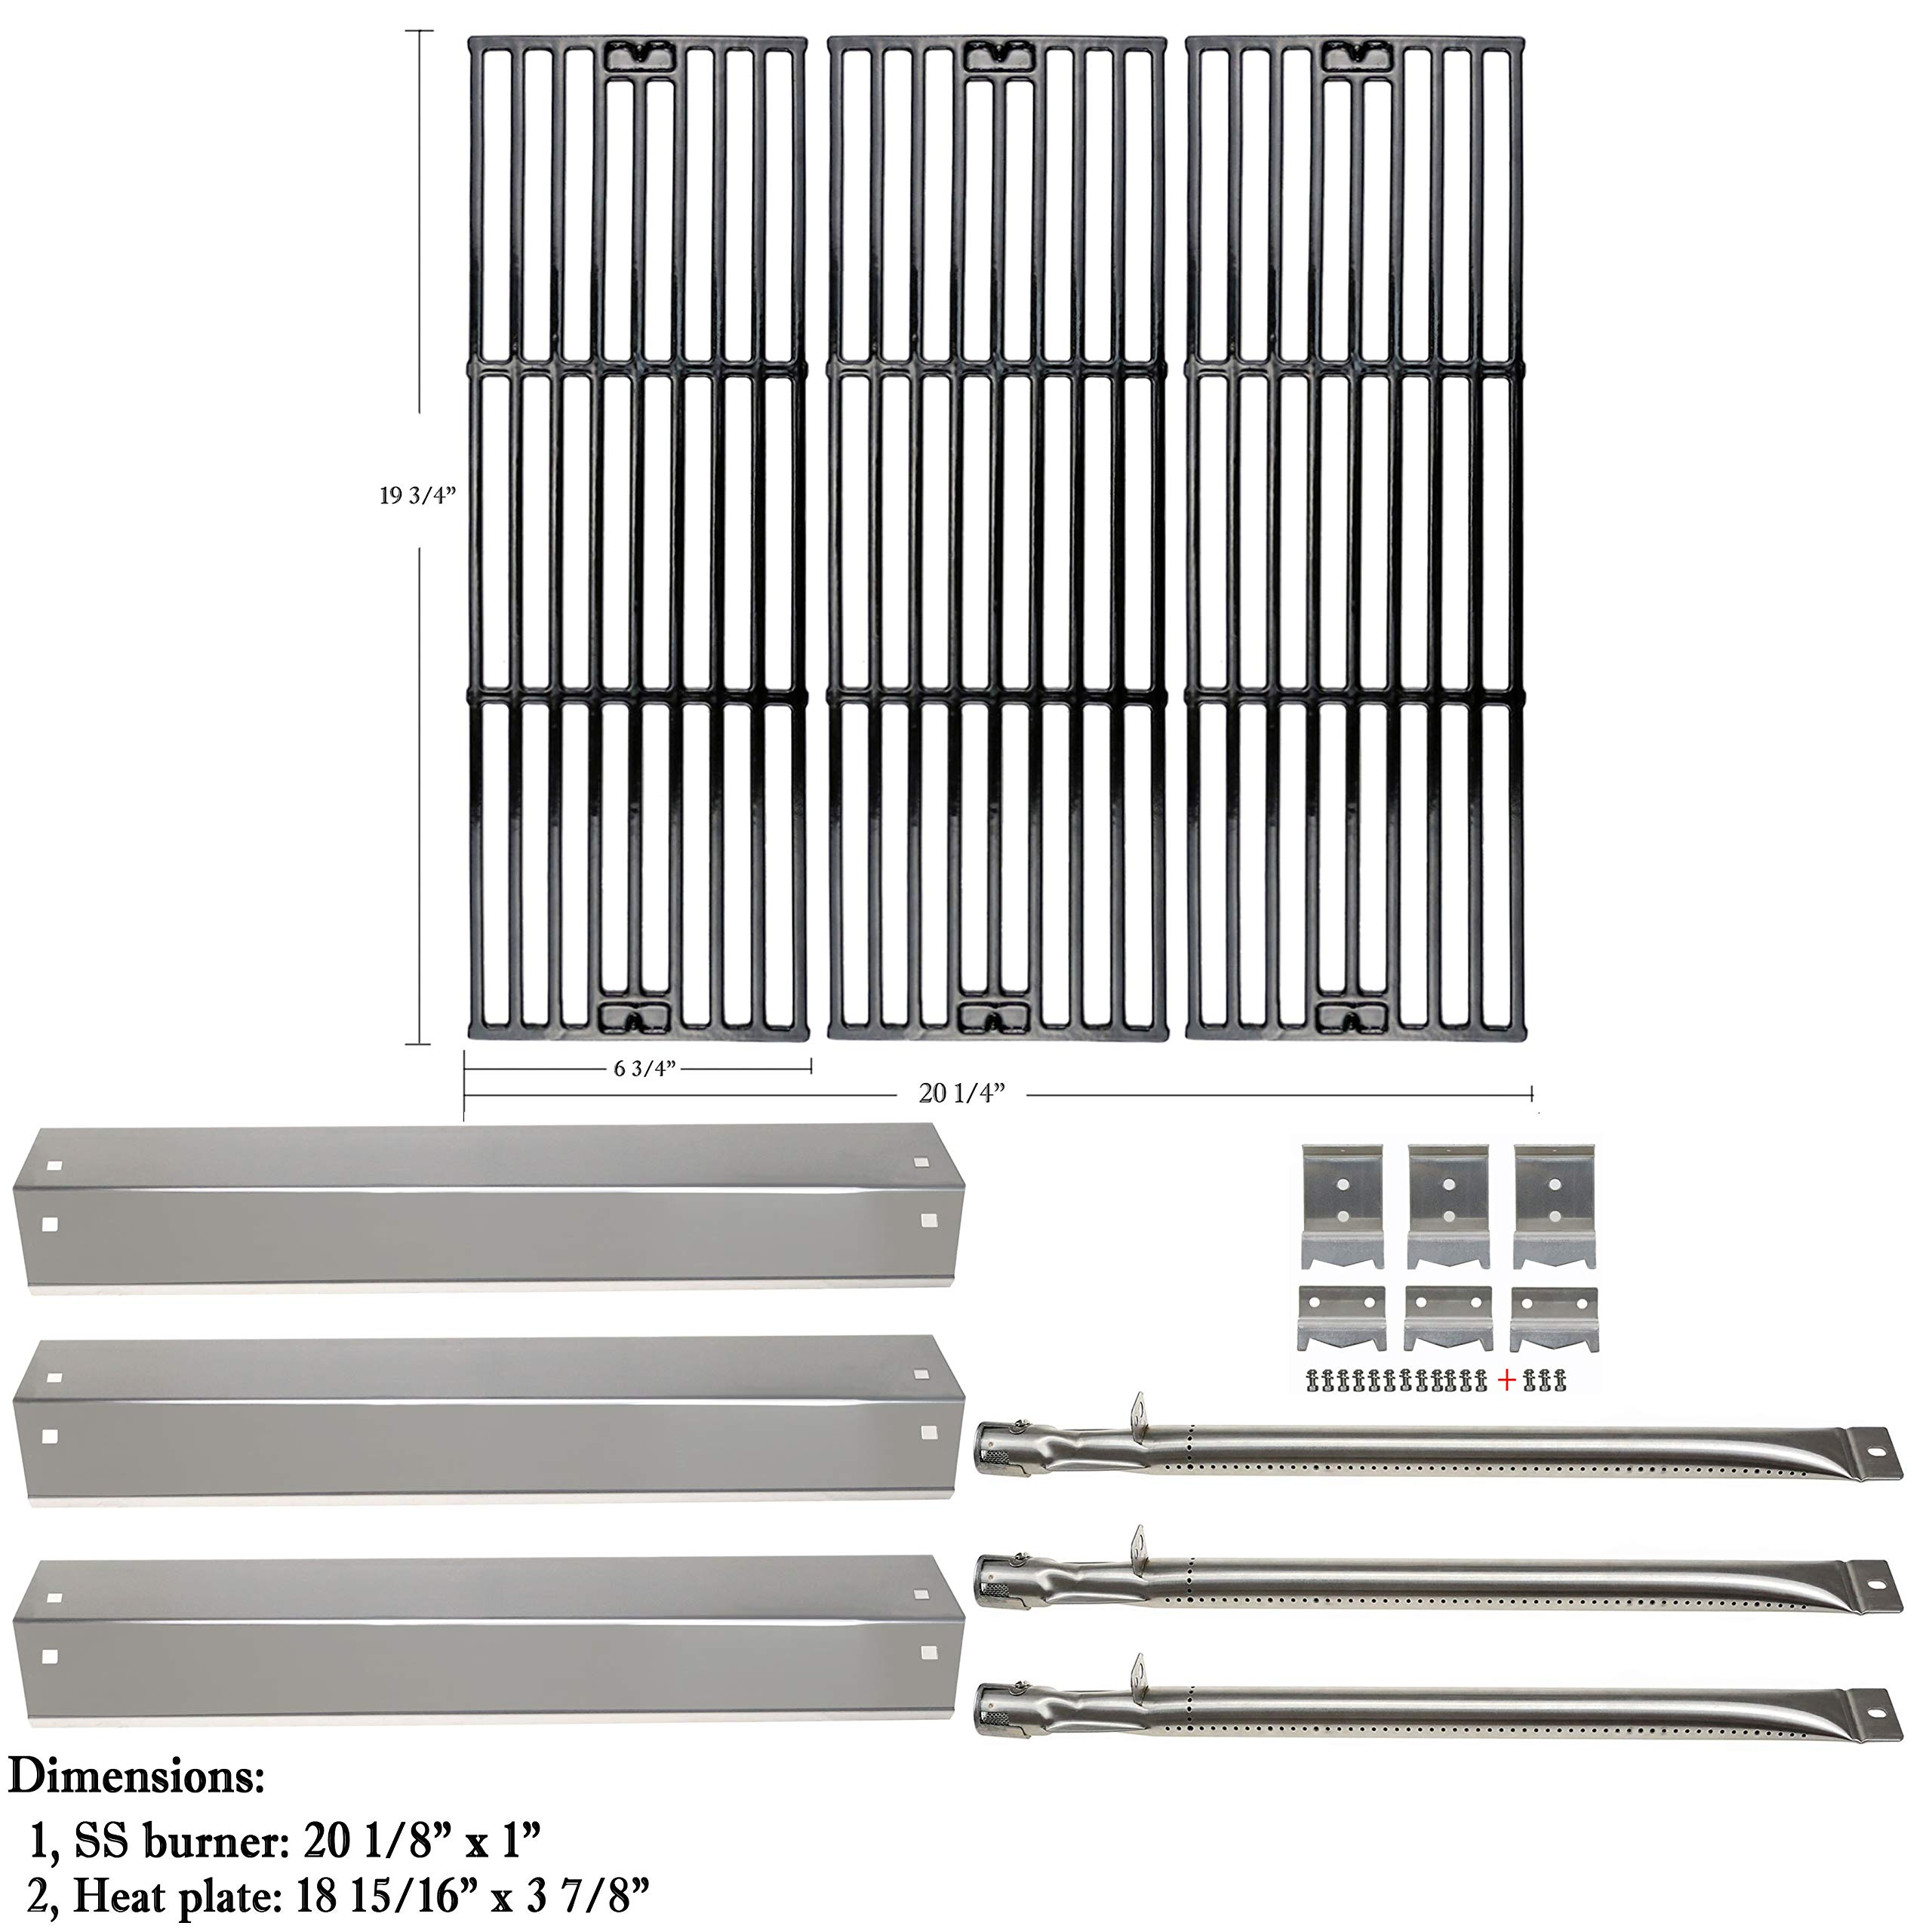 Hisencn Replacement Rebuild Kit fits Chargriller 3001, 3008, 3030, 4000, 5050, 5252 Gas Grill Stainless Steel Burner Tube, Heat Plate, Porcelain-Enameled Cast Iron Cooking Grates, igniter Electrode by Hisencn